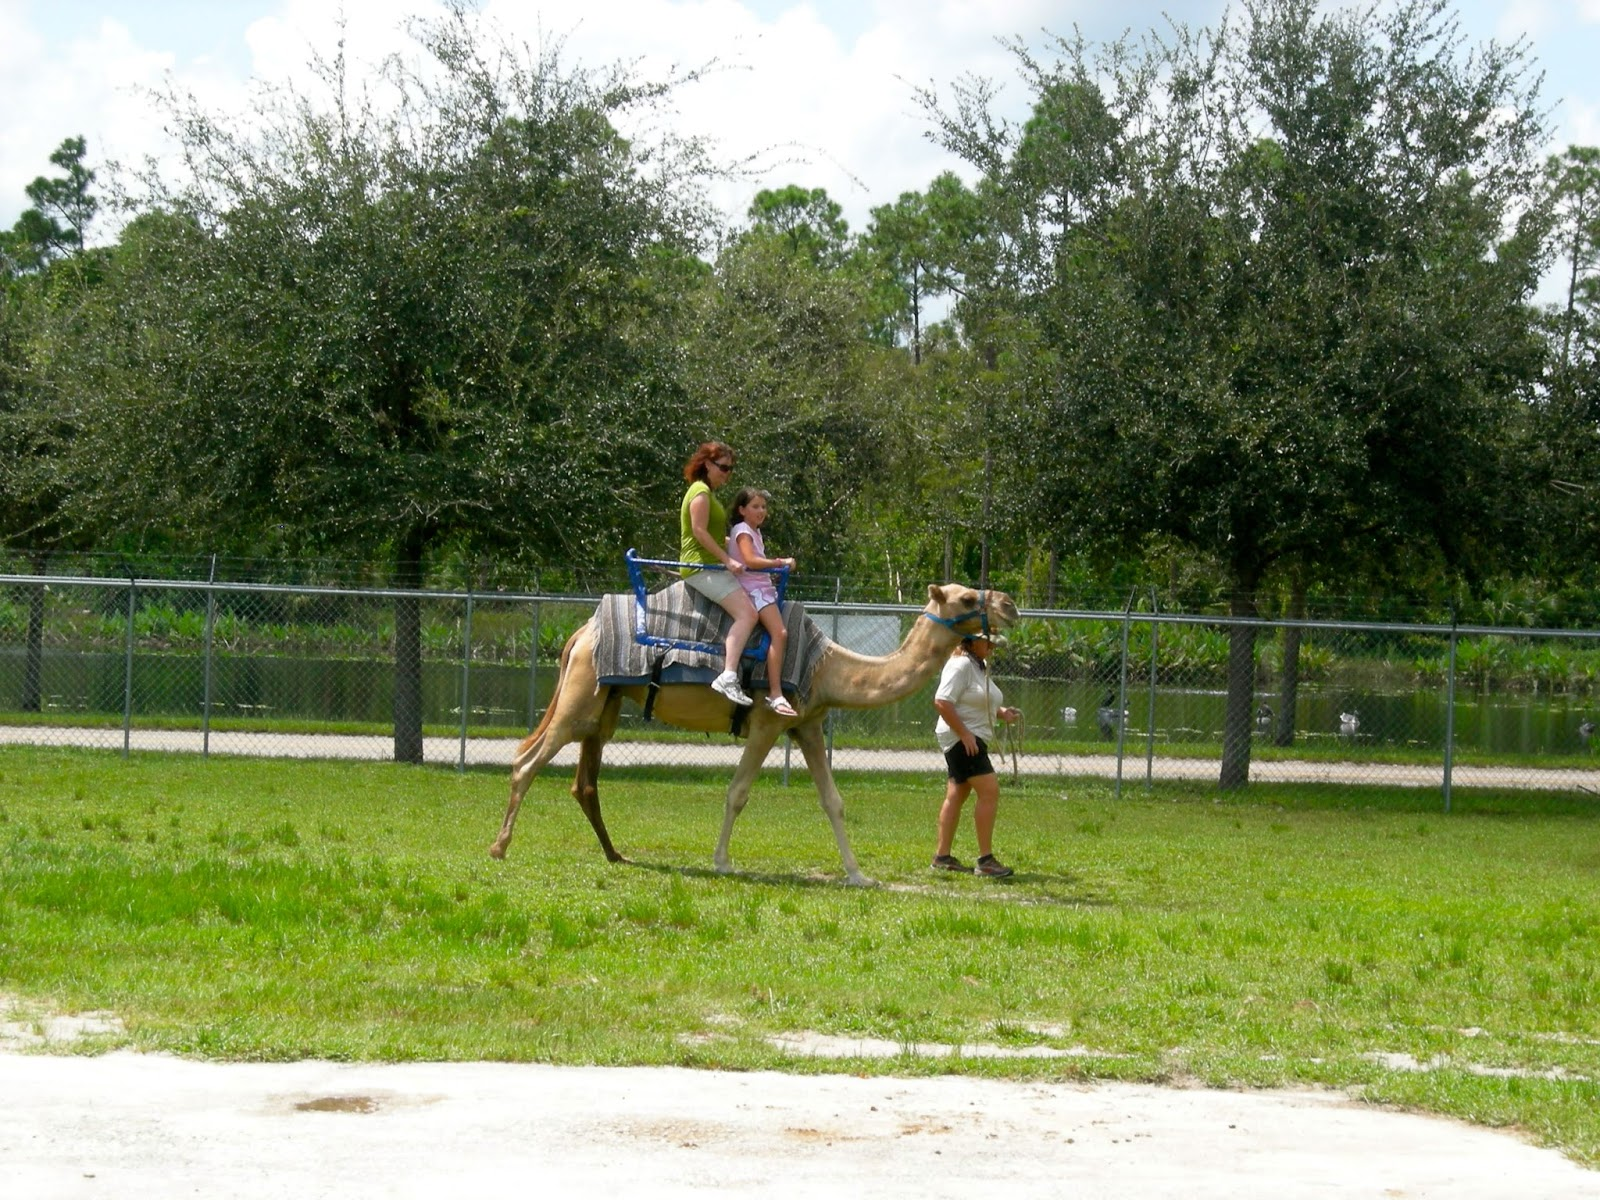 Camel Ride at Lion Country Safari, Loxahatchee, FL - ouroutdoortravels.blogspot.com